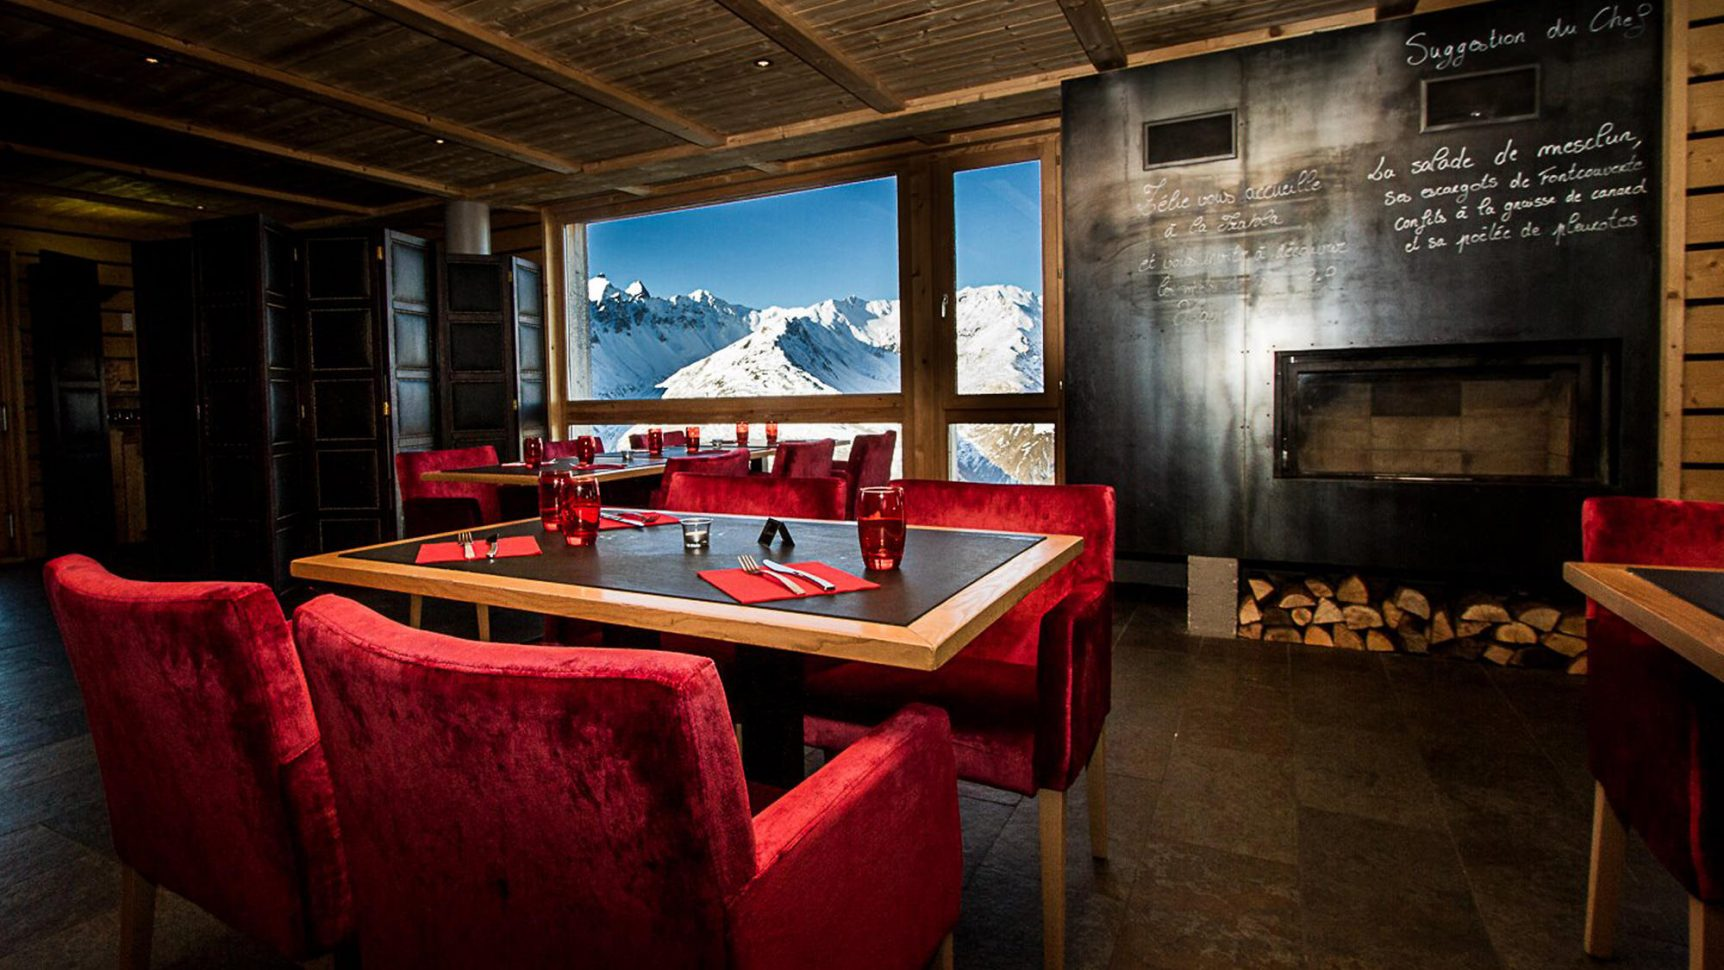 Restaurants d'altitude de Valloire